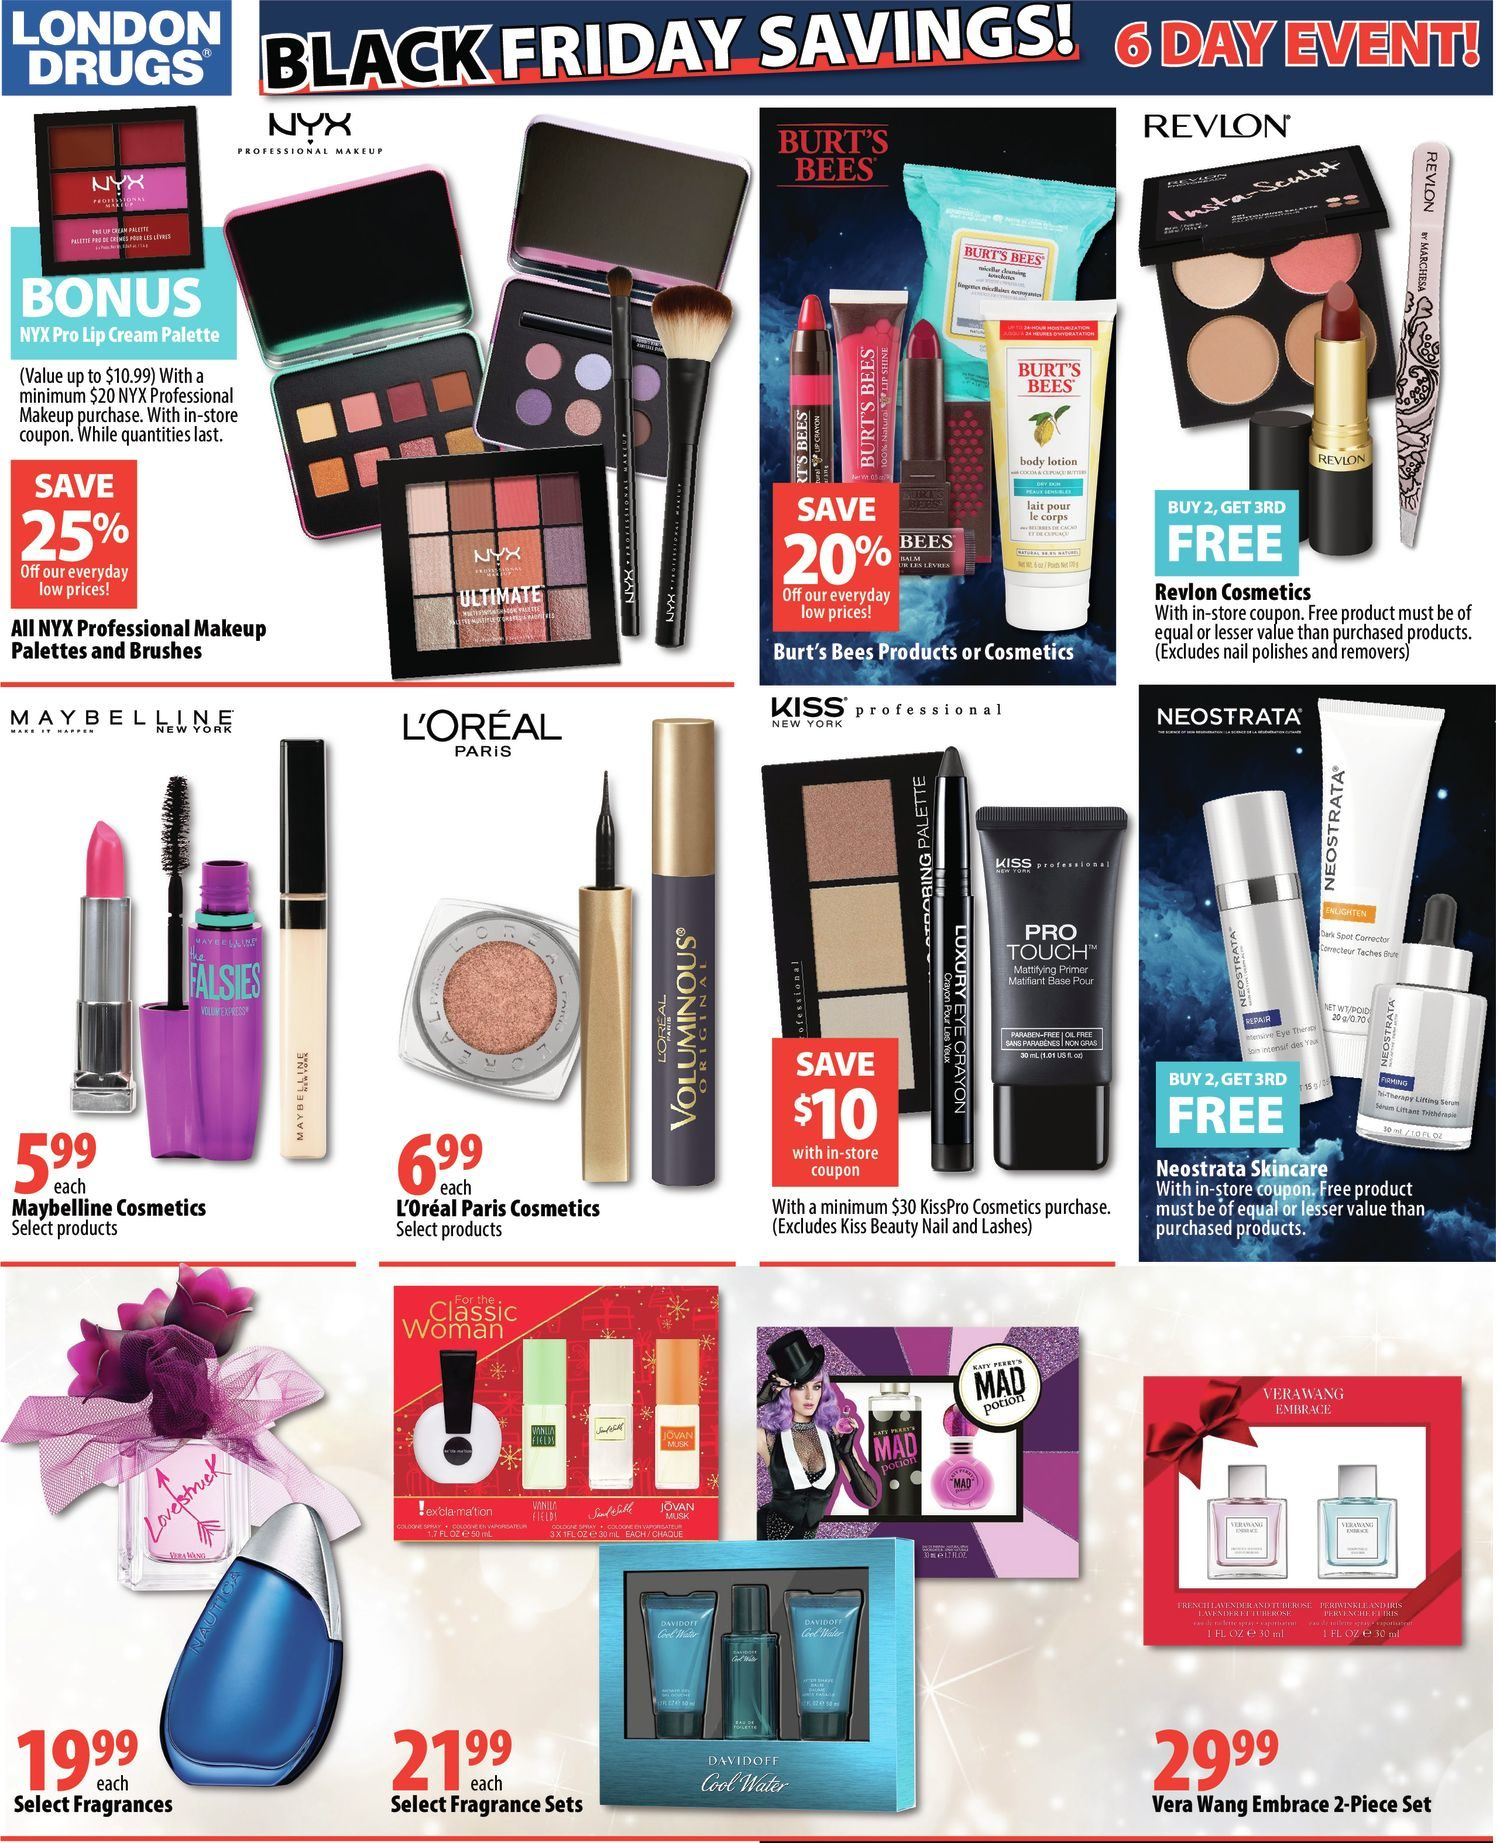 London Drugs Weekly Flyer - Black Friday 6 Day Event! - Nov